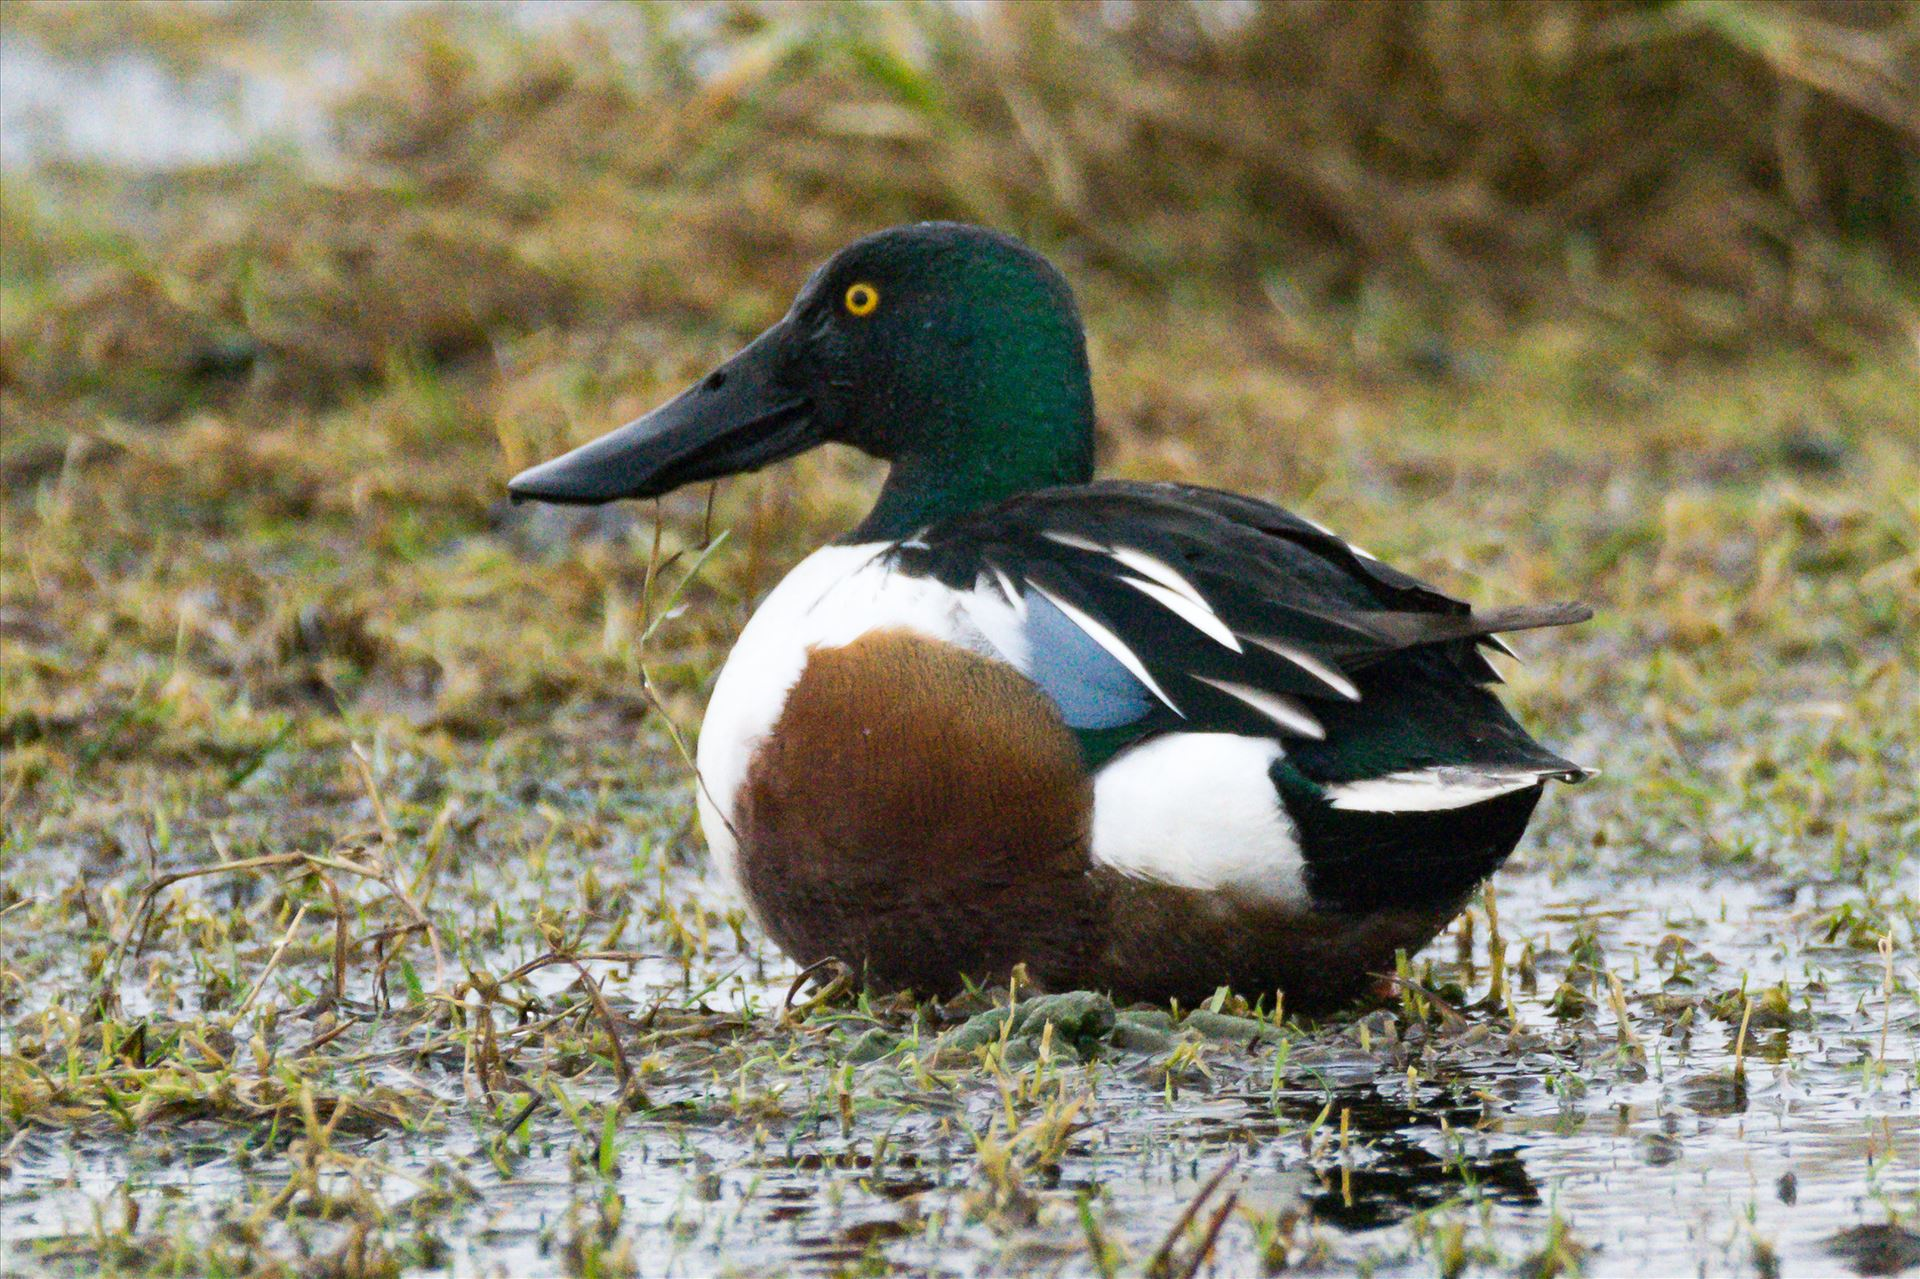 Shoveler taken at North Gare, Seaton - Shoveler taken at North Gare, Seaton by AJ Stoves Photography